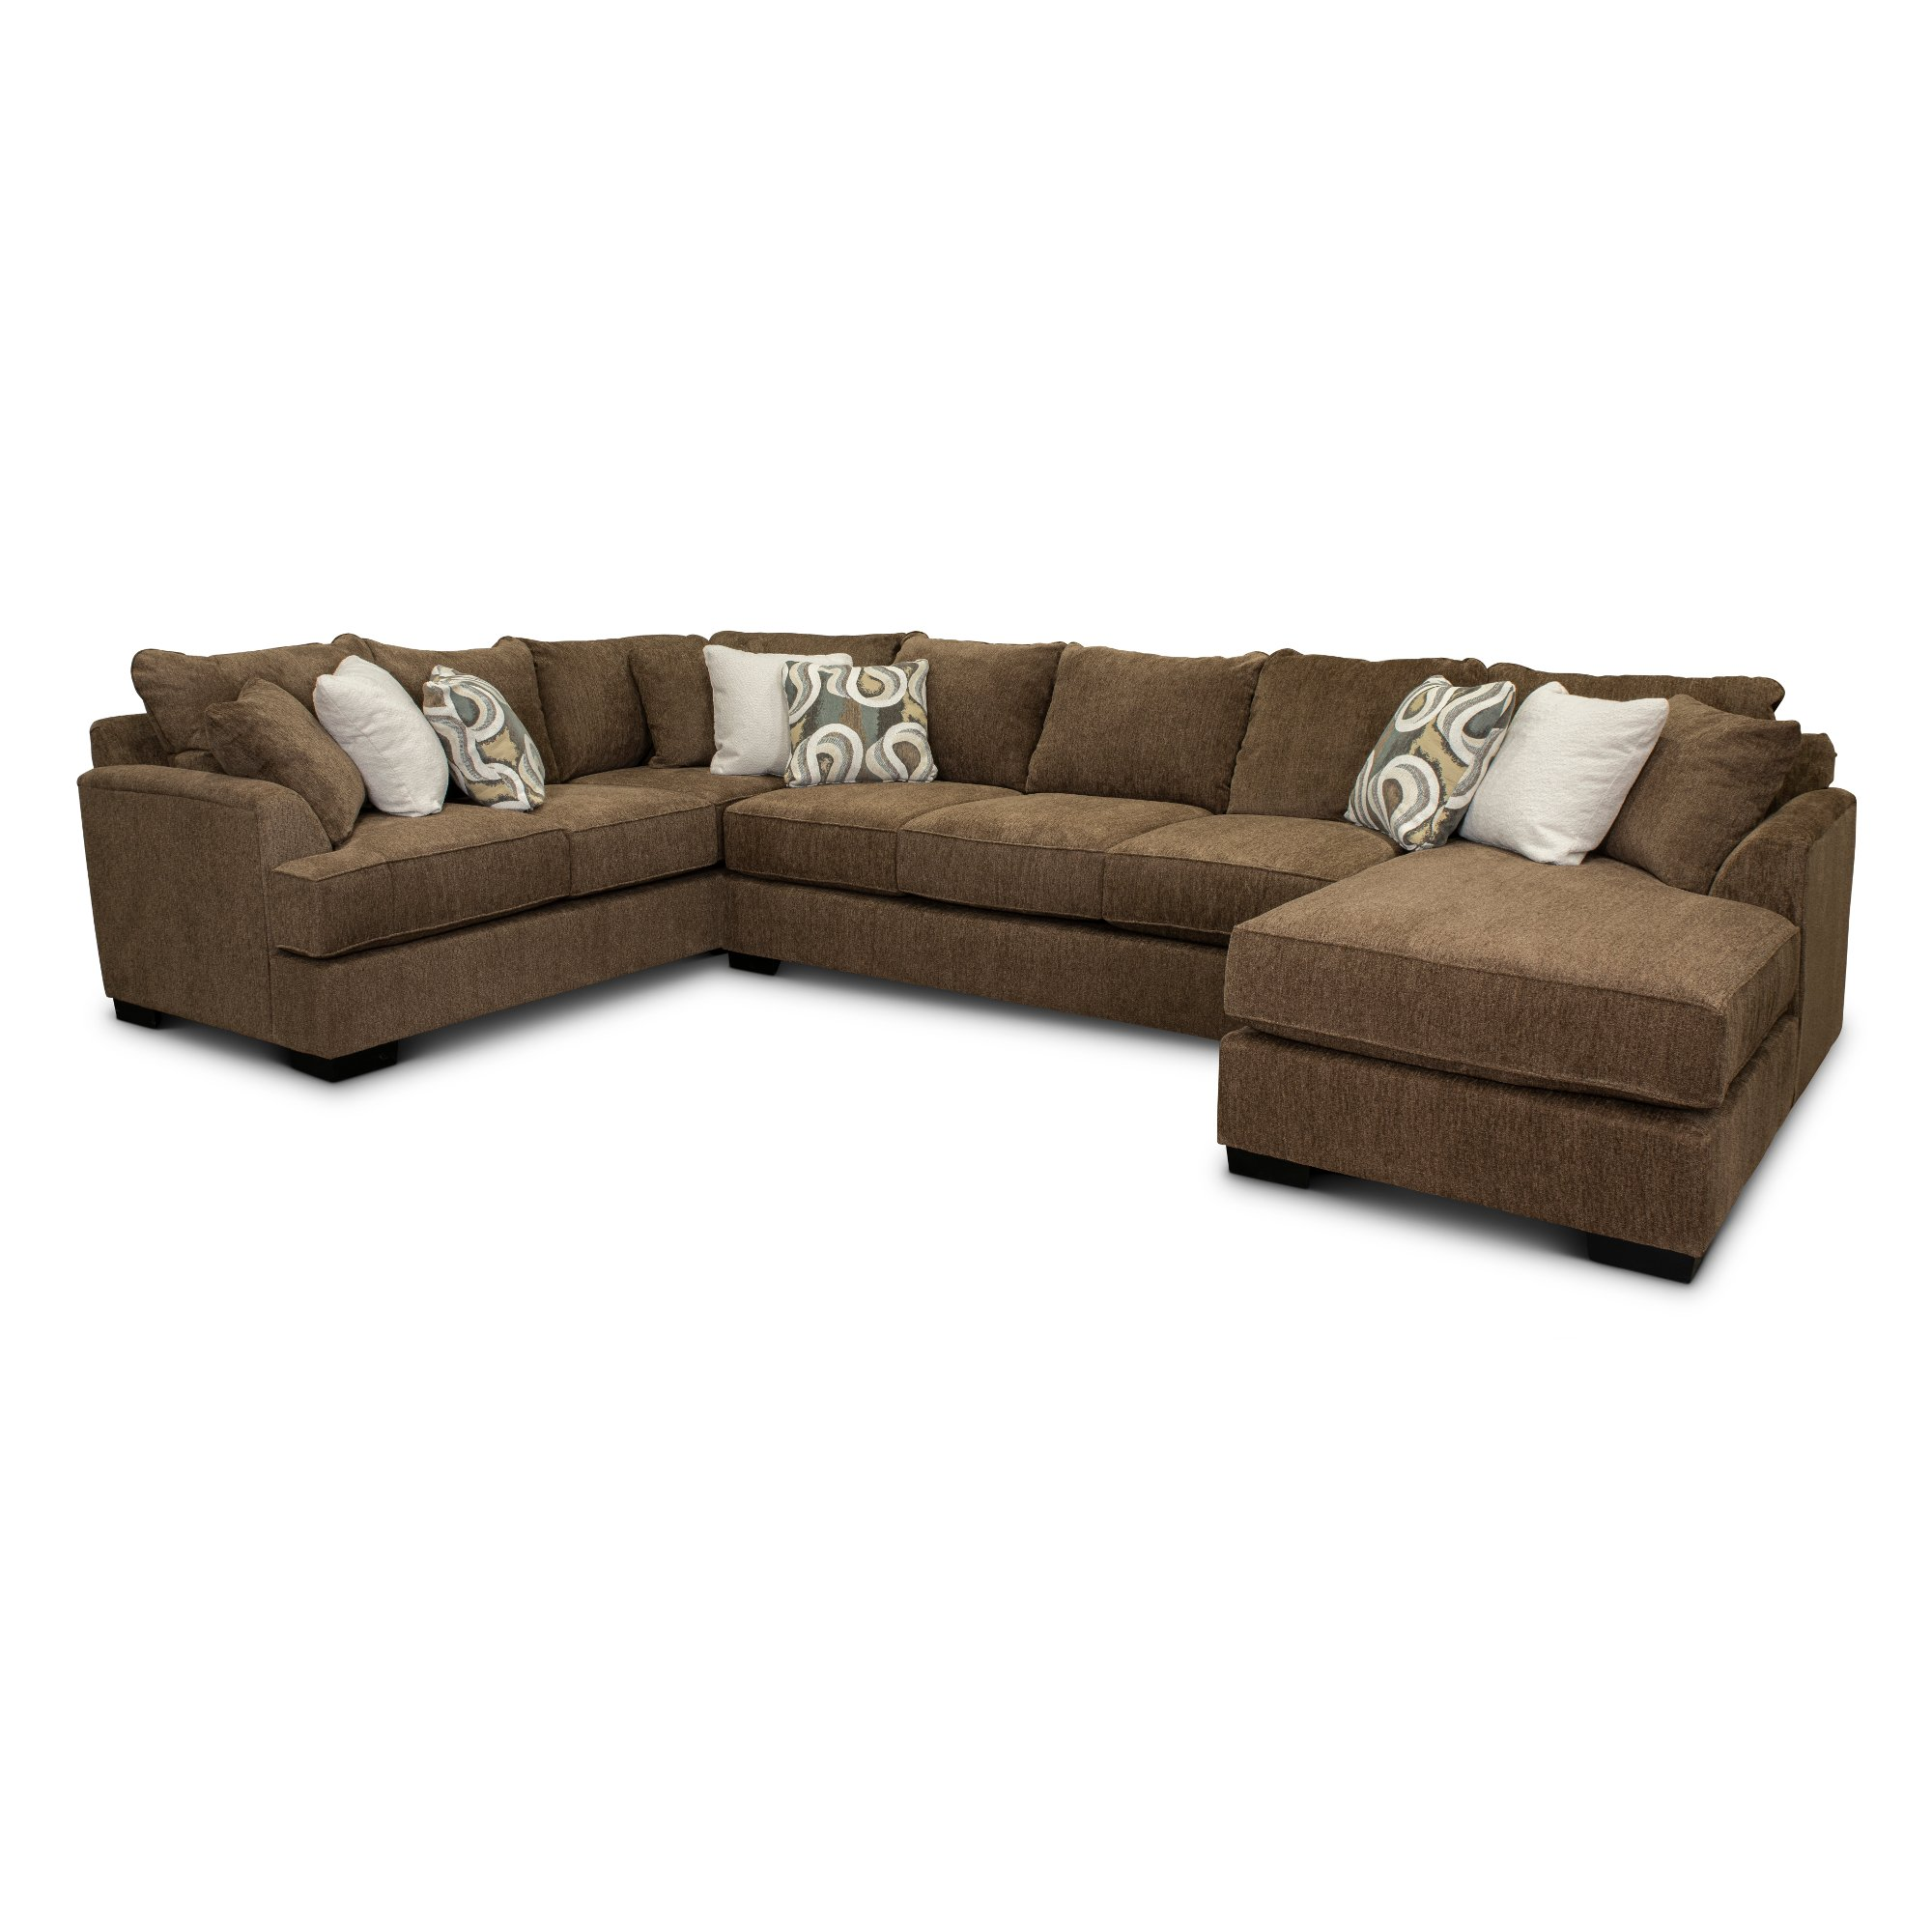 Brown 3 Piece Sectional Sofa With Raf